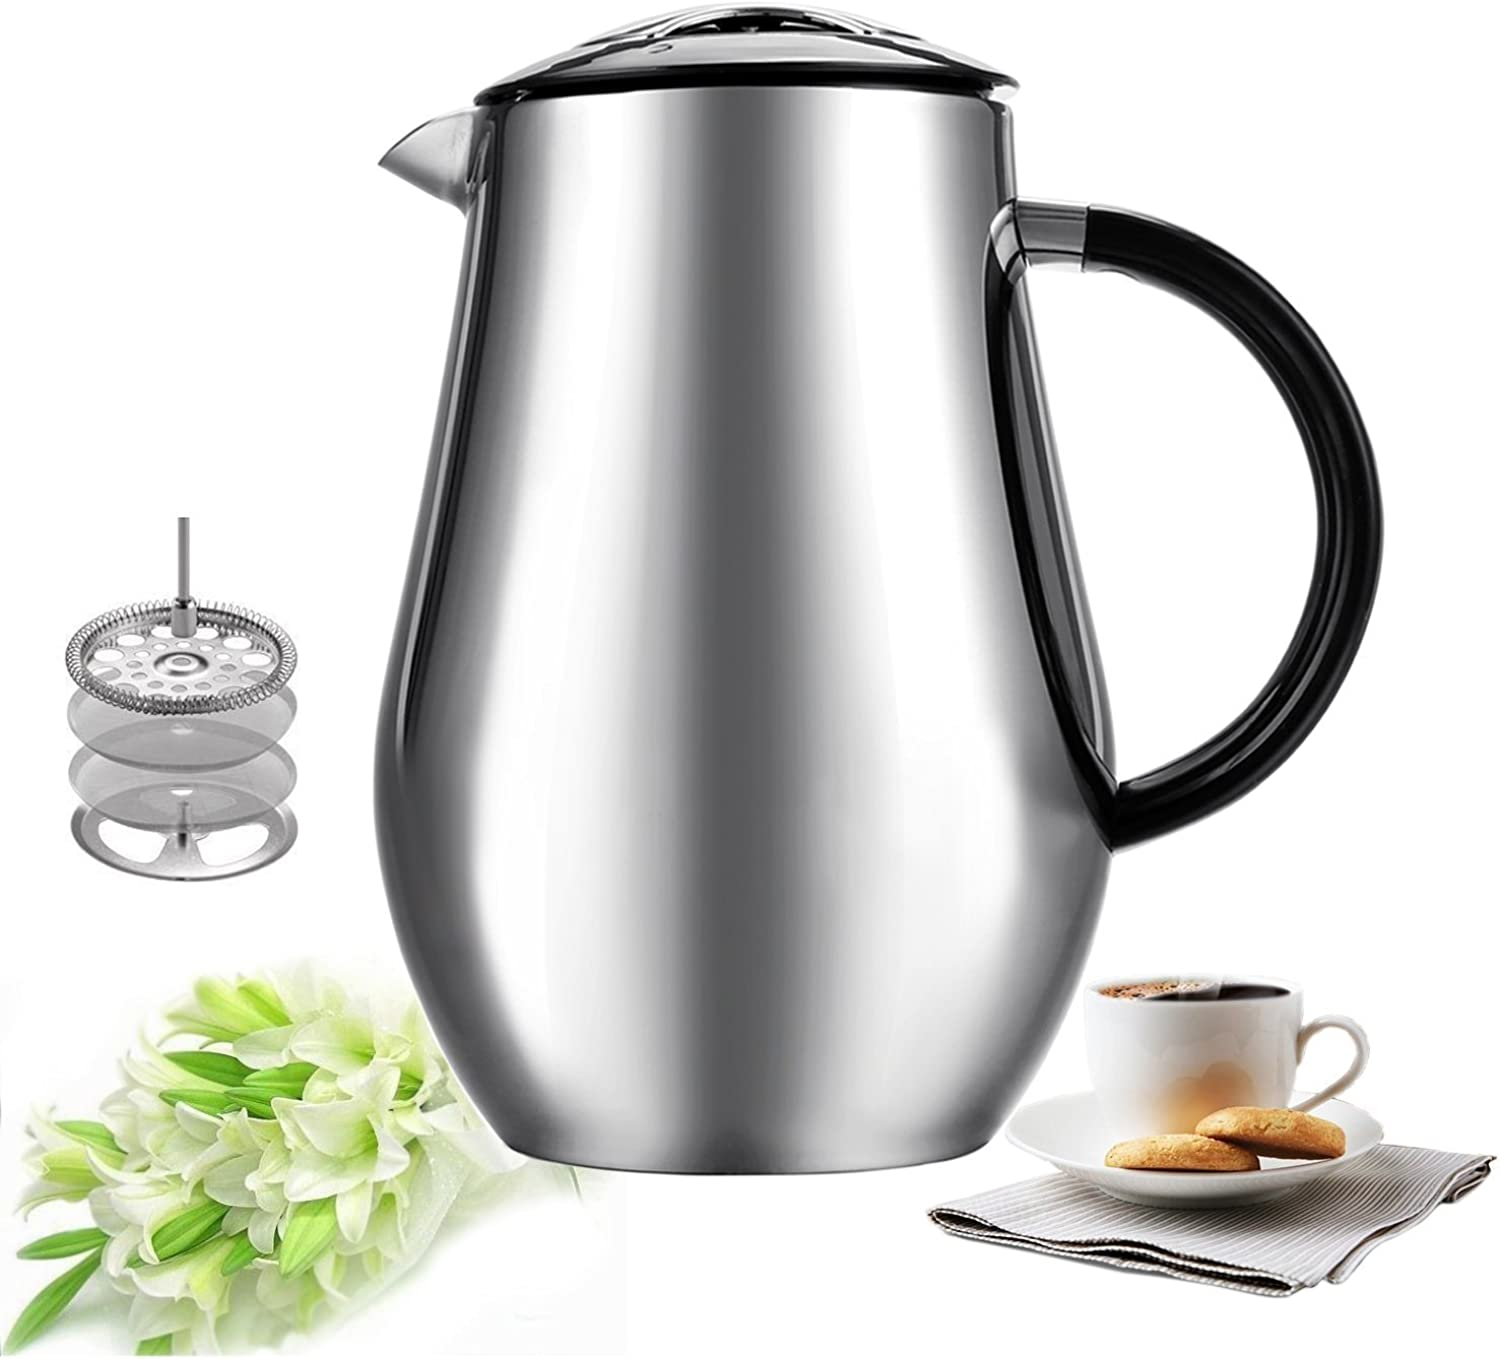 Sailnovo Coffee French Presses 1L 34oz Coffee Press Cafetiere Stainless Steel Double-Wall Vacuum Insulated Coffee Tea Maker Press Pot Plunger With ABS Handle